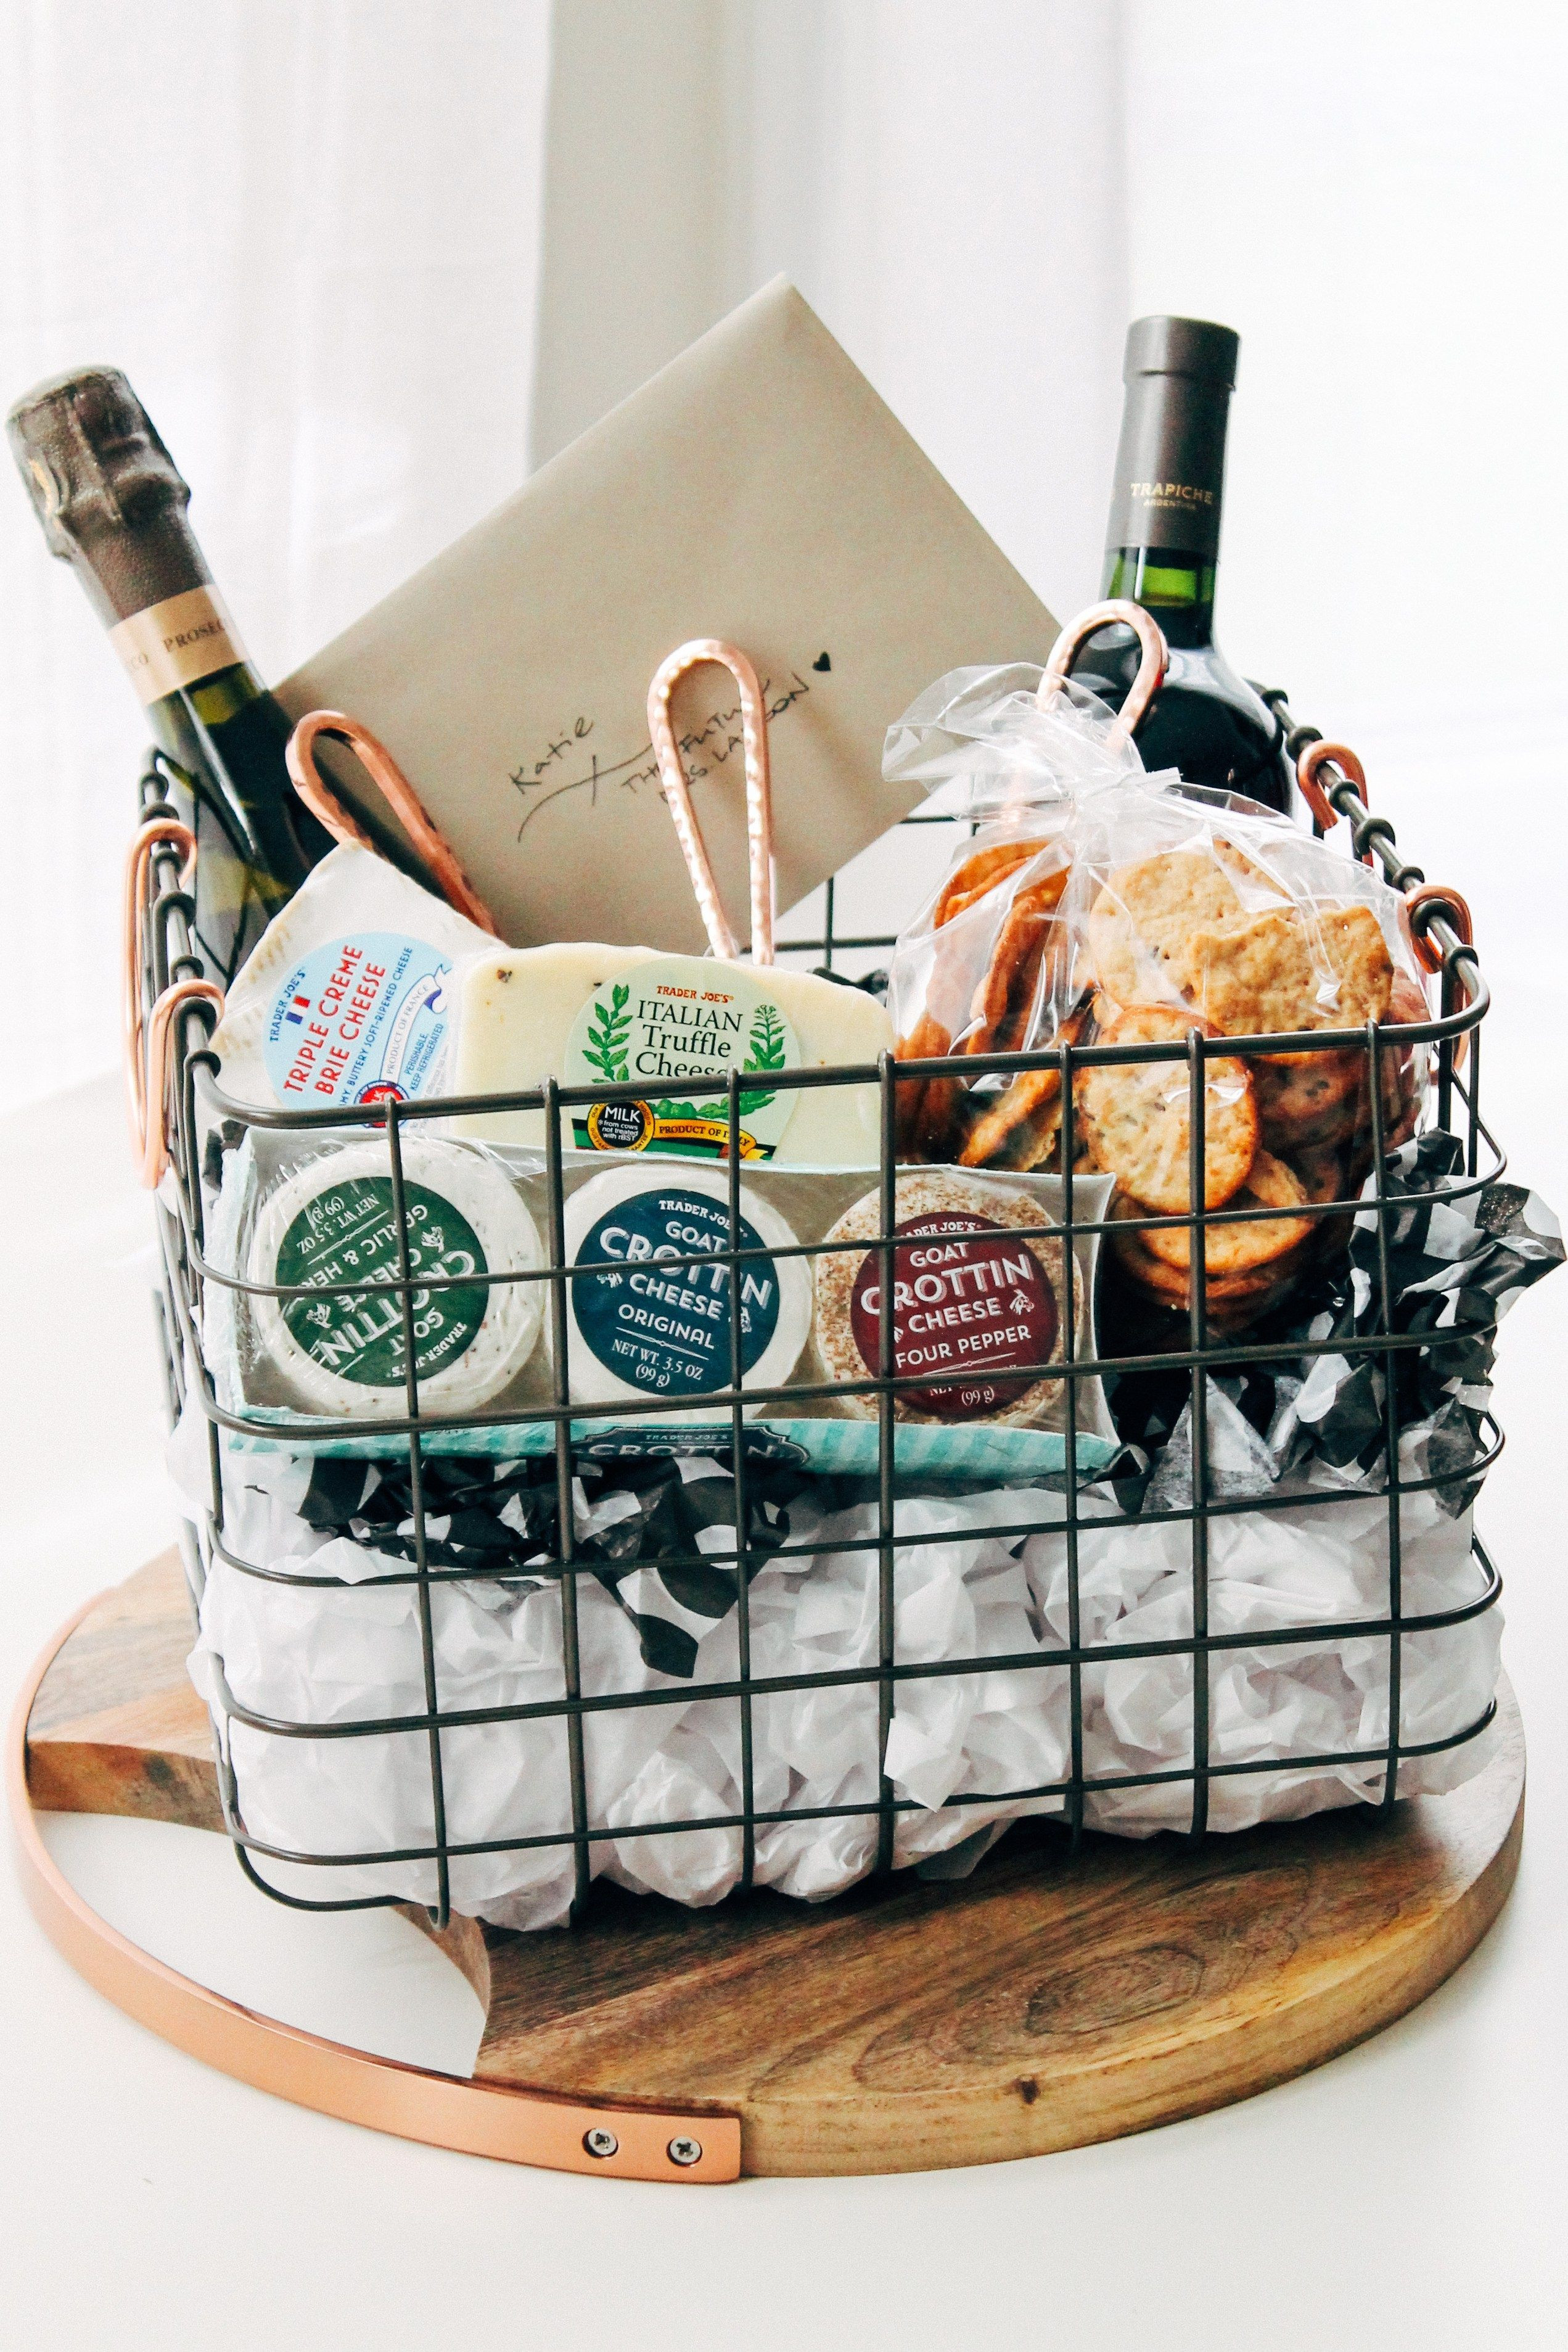 Wine Basket Gift Ideas  the ultimate cheese t basket playswellwithbutter